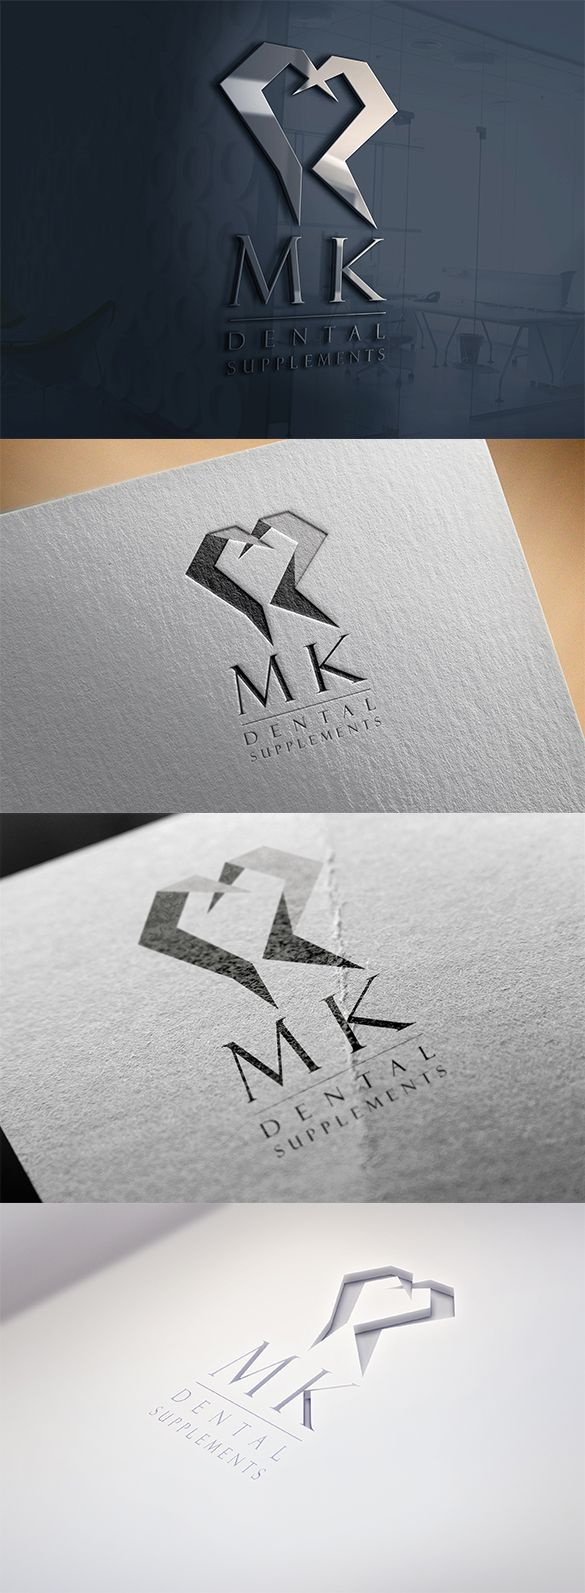 MK for dental supplements logo design